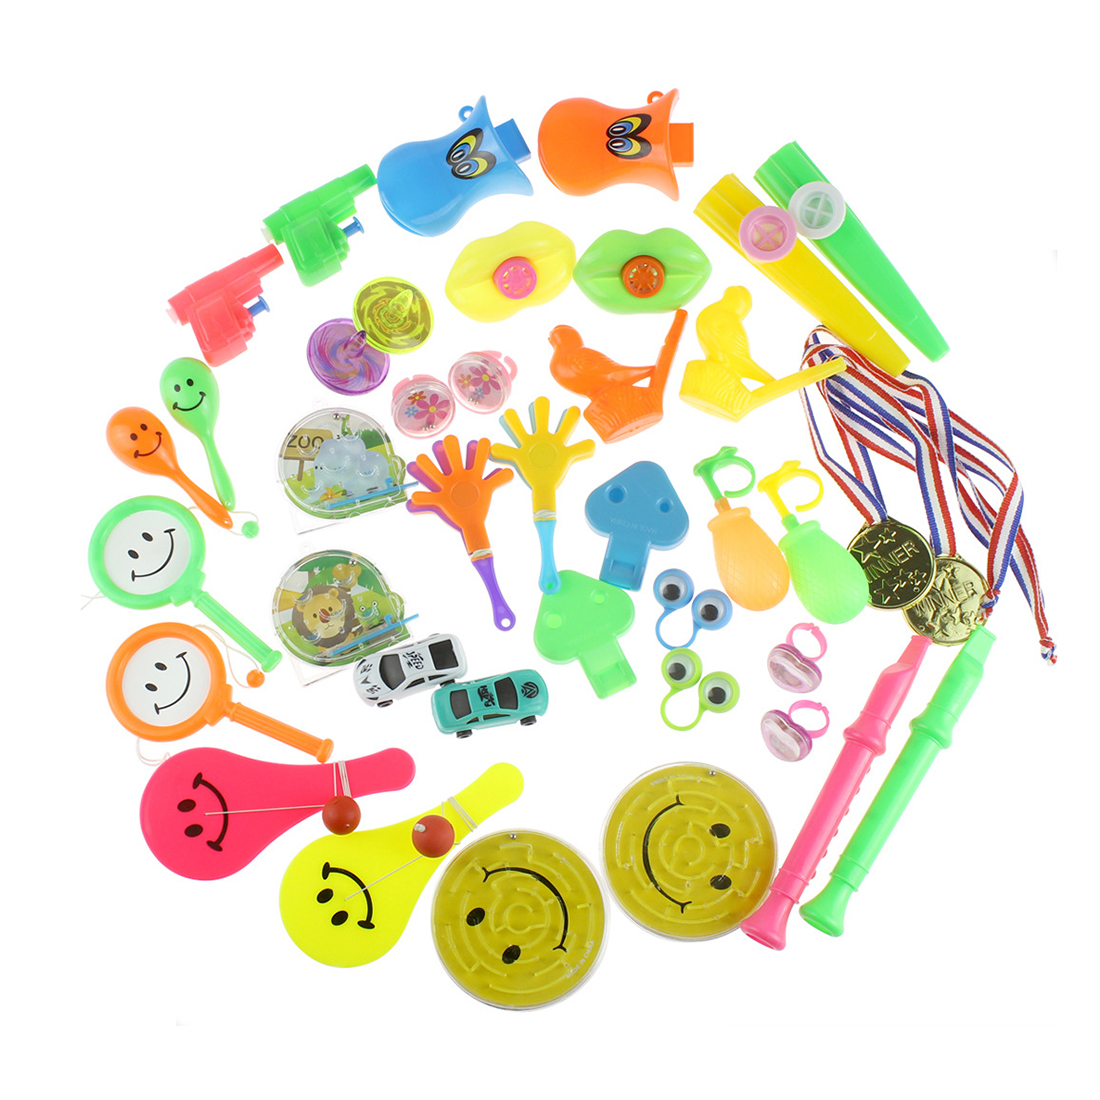 100Pcs 20 Types Children Small Toy Prop Set For Party Mini Cars Whistle Medal Small Hand Clap Panda Smiling Face Shaking Drum